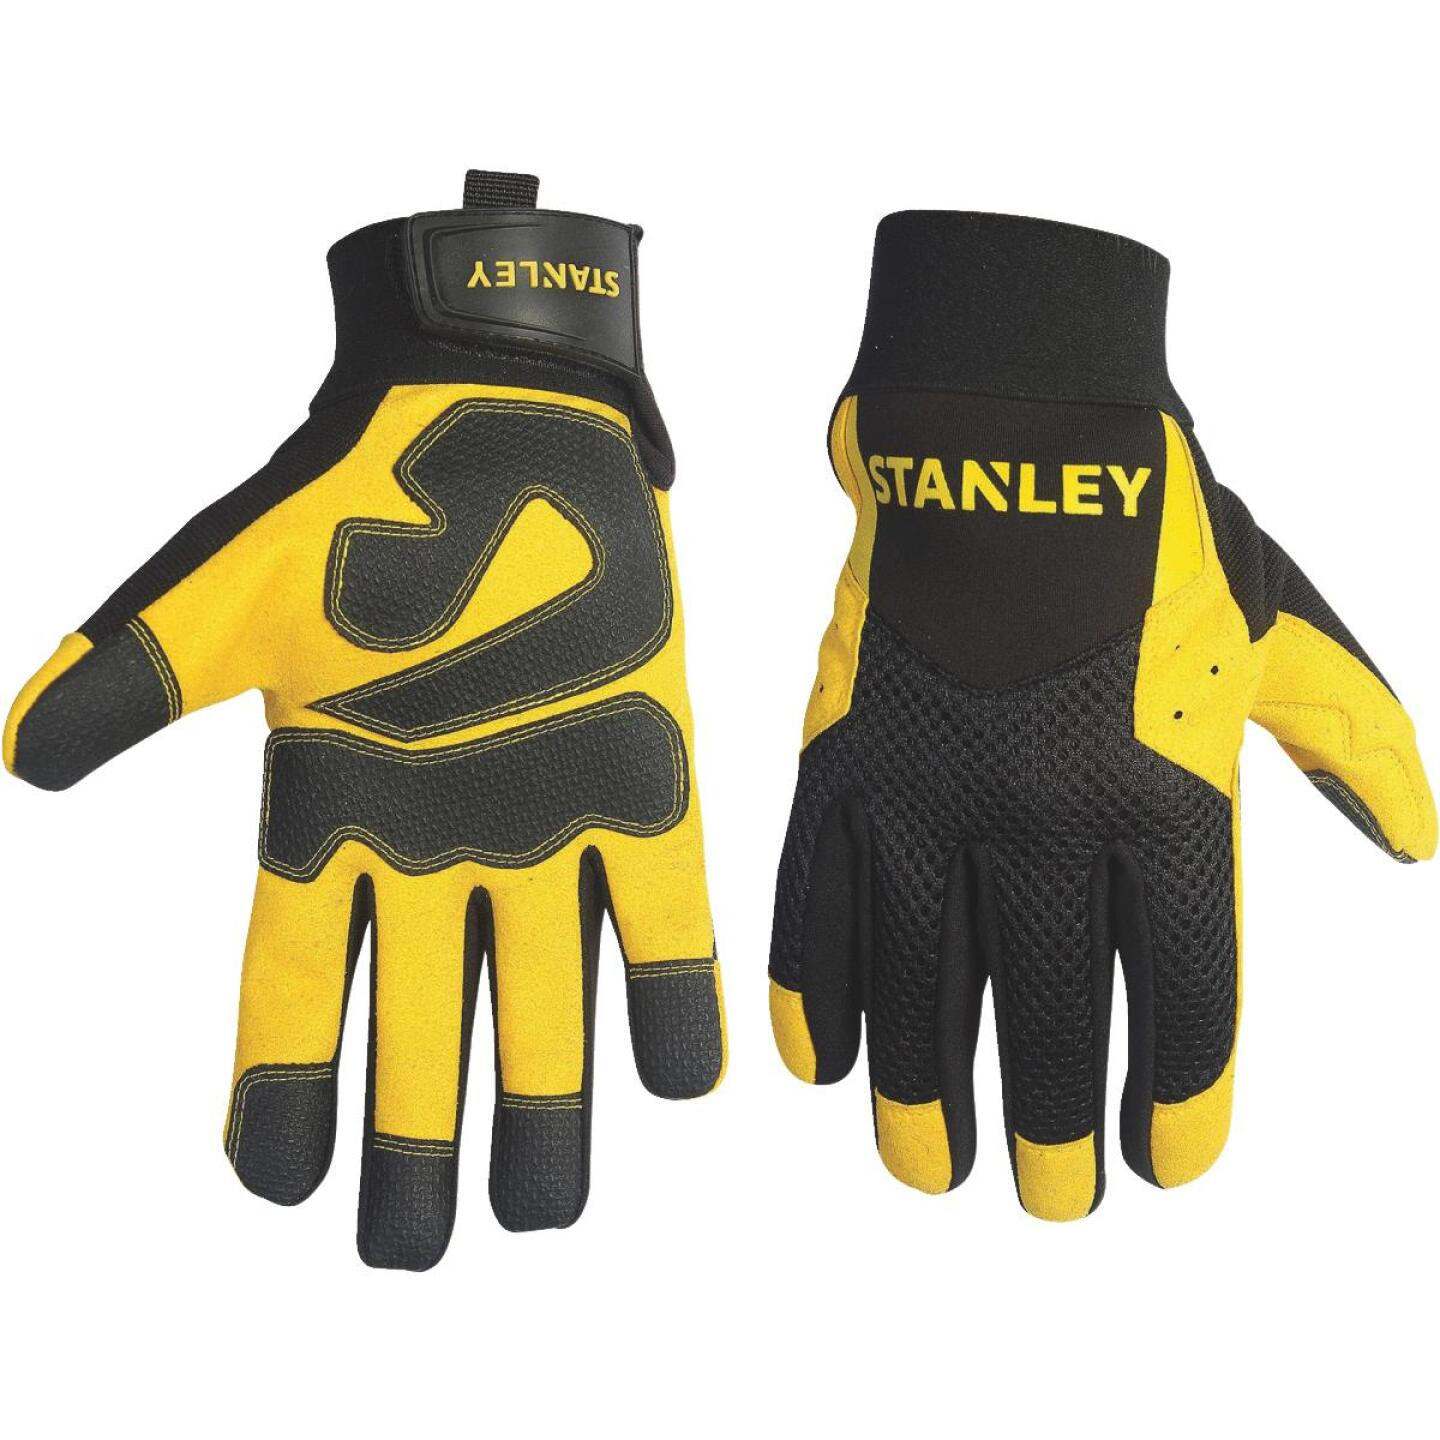 Stanley Men's XL Synthetic Leather High Performance Glove Image 1